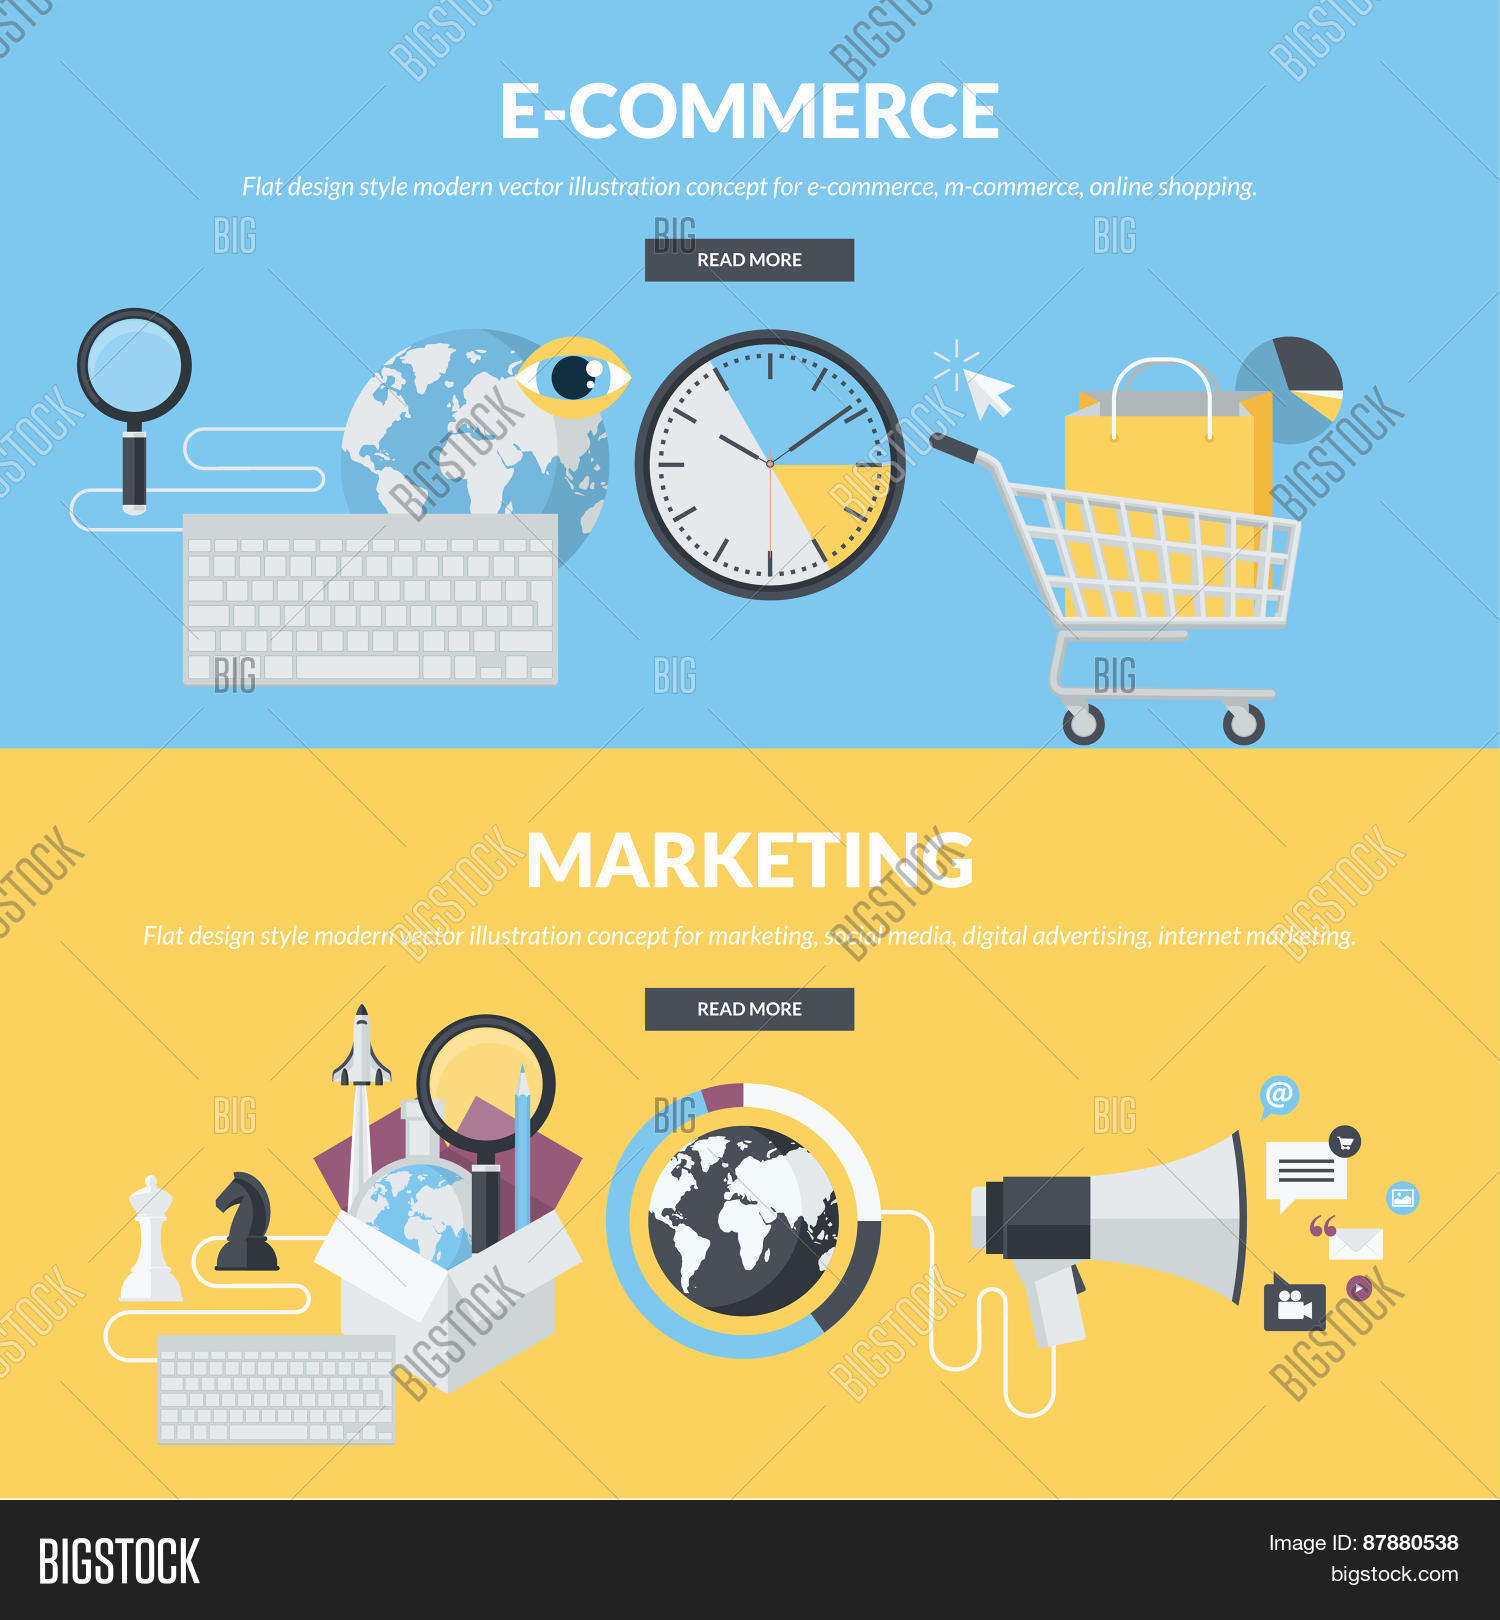 e commerce as a business marketing tool in modern society The developing role of social media in the modern business world has blossomed into a full-scale business marketing tool forbescom llc ™ all.